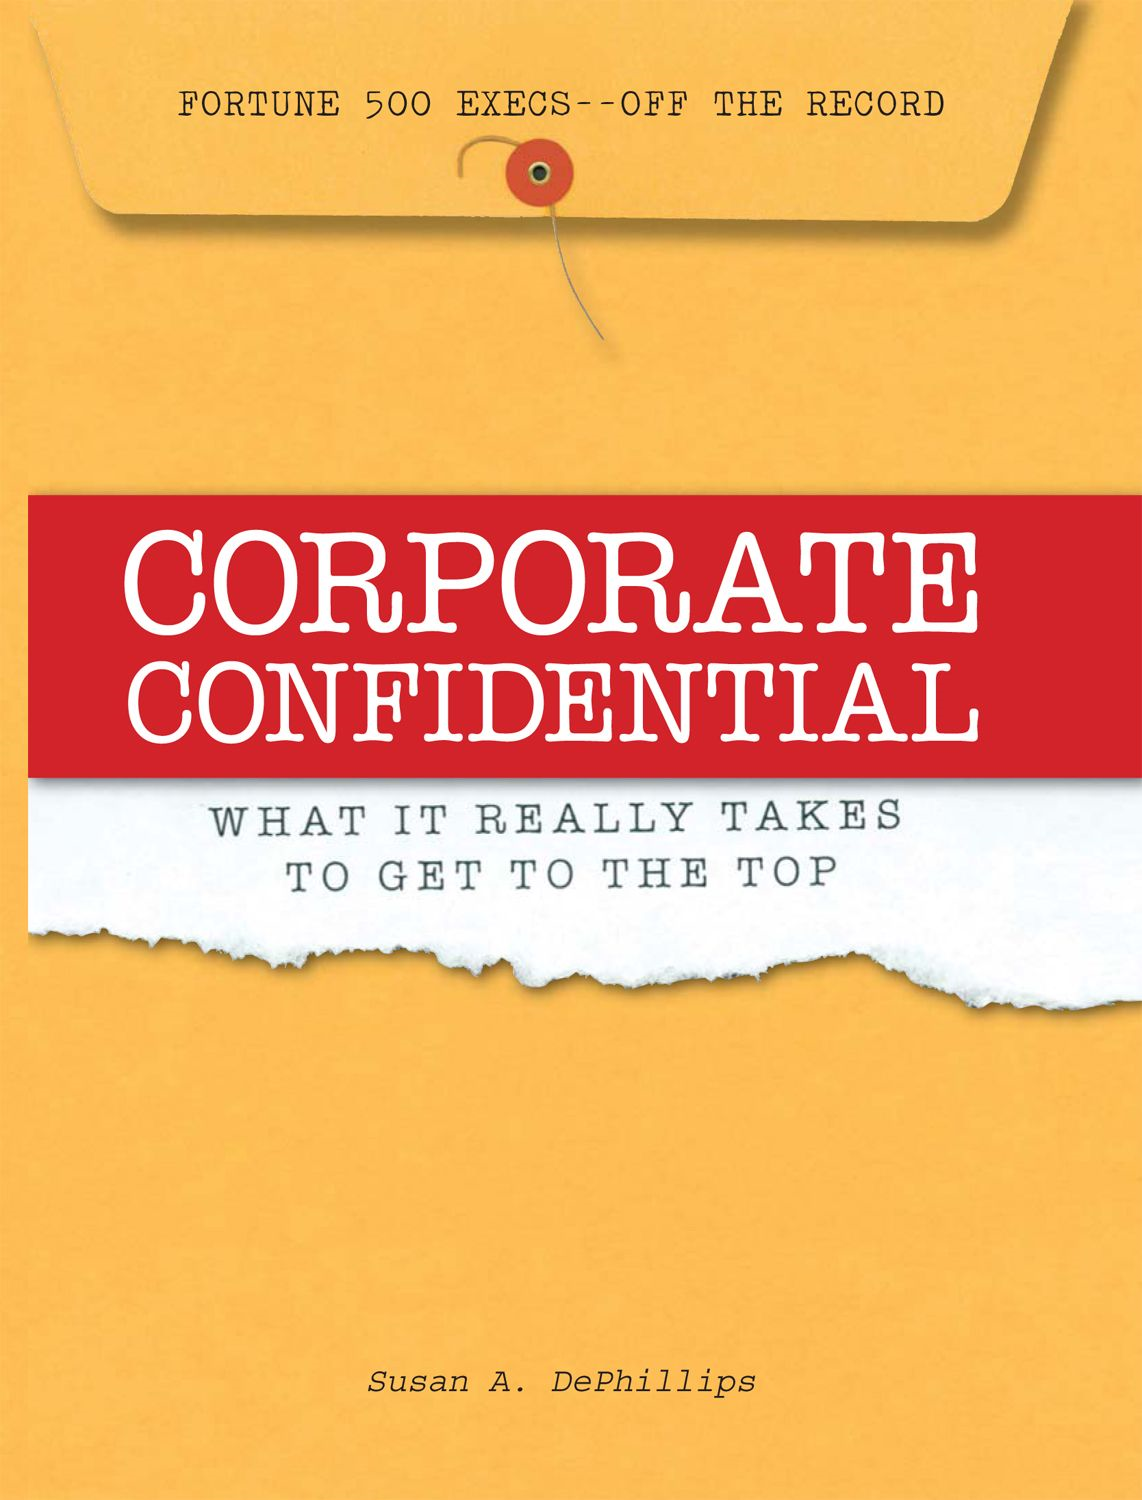 Corporate Confidential: Fortune 500 Executives Off the Record - What It Really Takes to Get to the Top